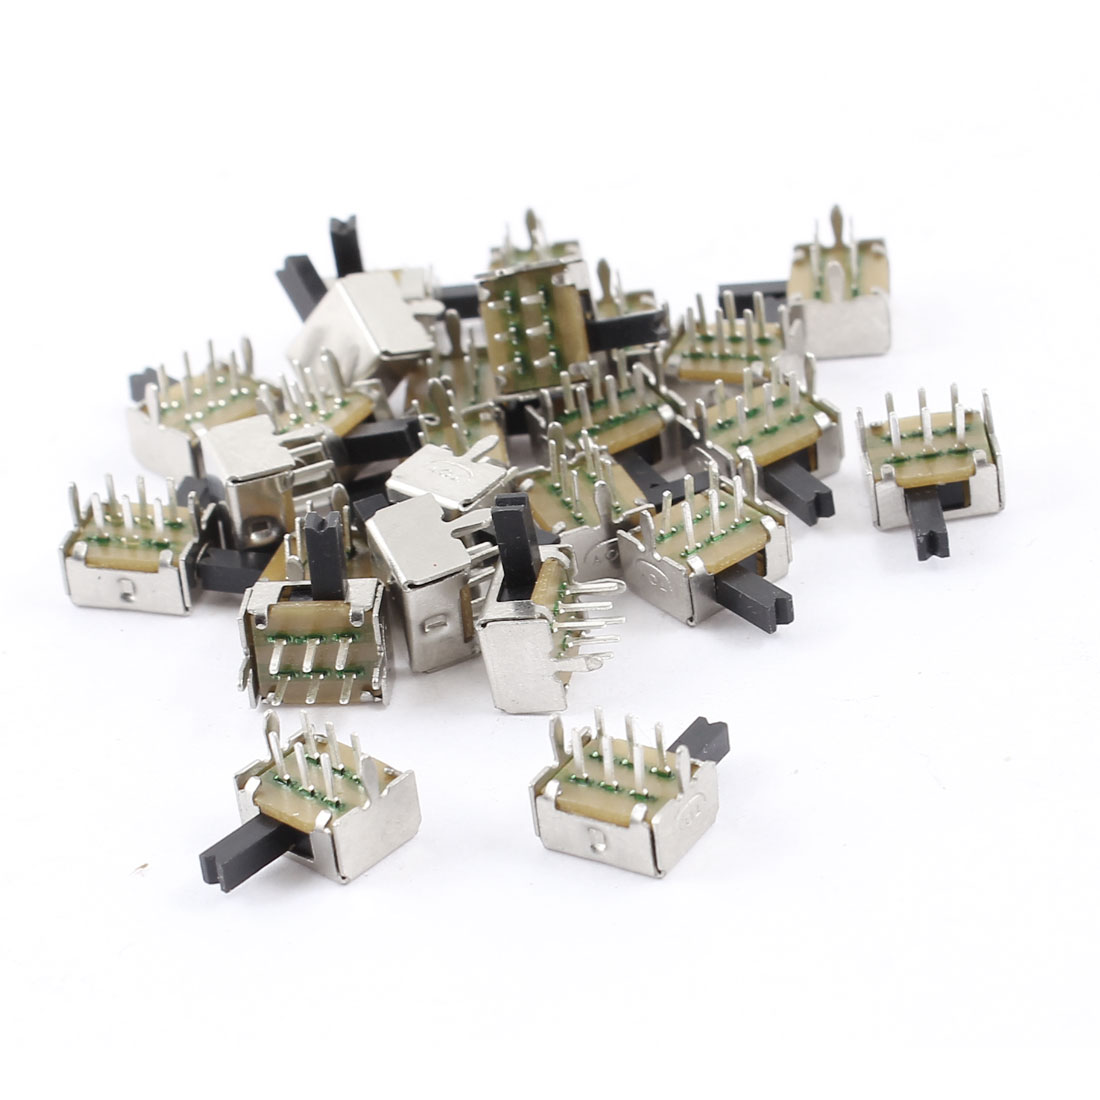 25 Pcs 6Pin PCB Mount 2 Position DPDT Miniature Mini Slide Switch